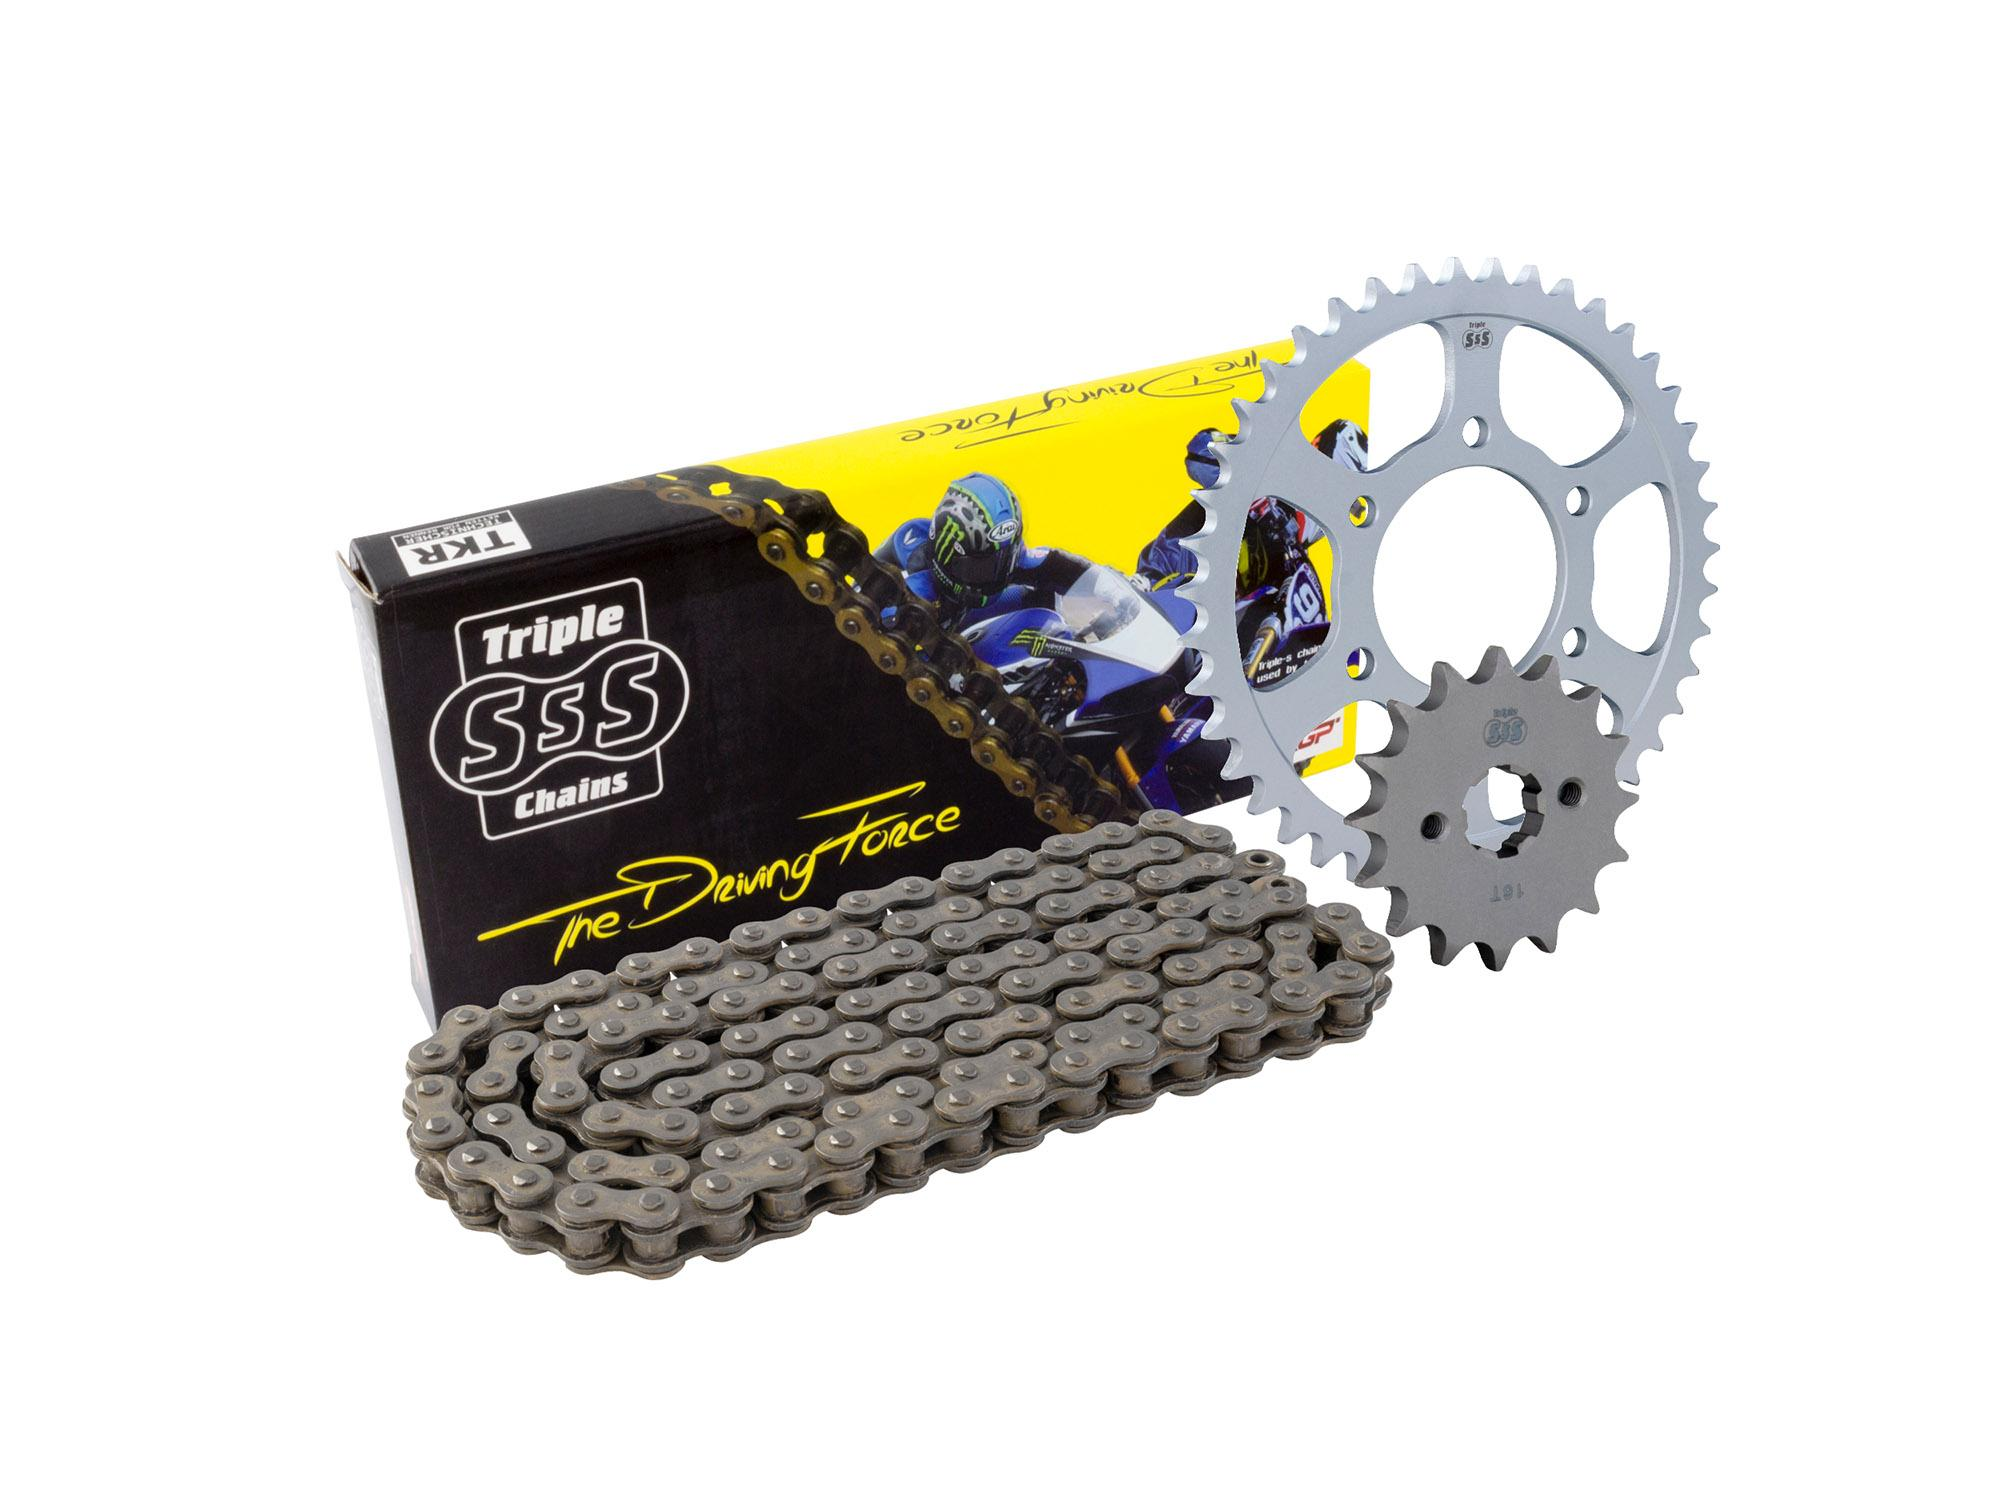 Suzuki GSR600 K6-L0 06-10 Chain & Sprocket Kit: 16T Front, 48T Rear, HD O-Ring Black Chain 525H 114 Link